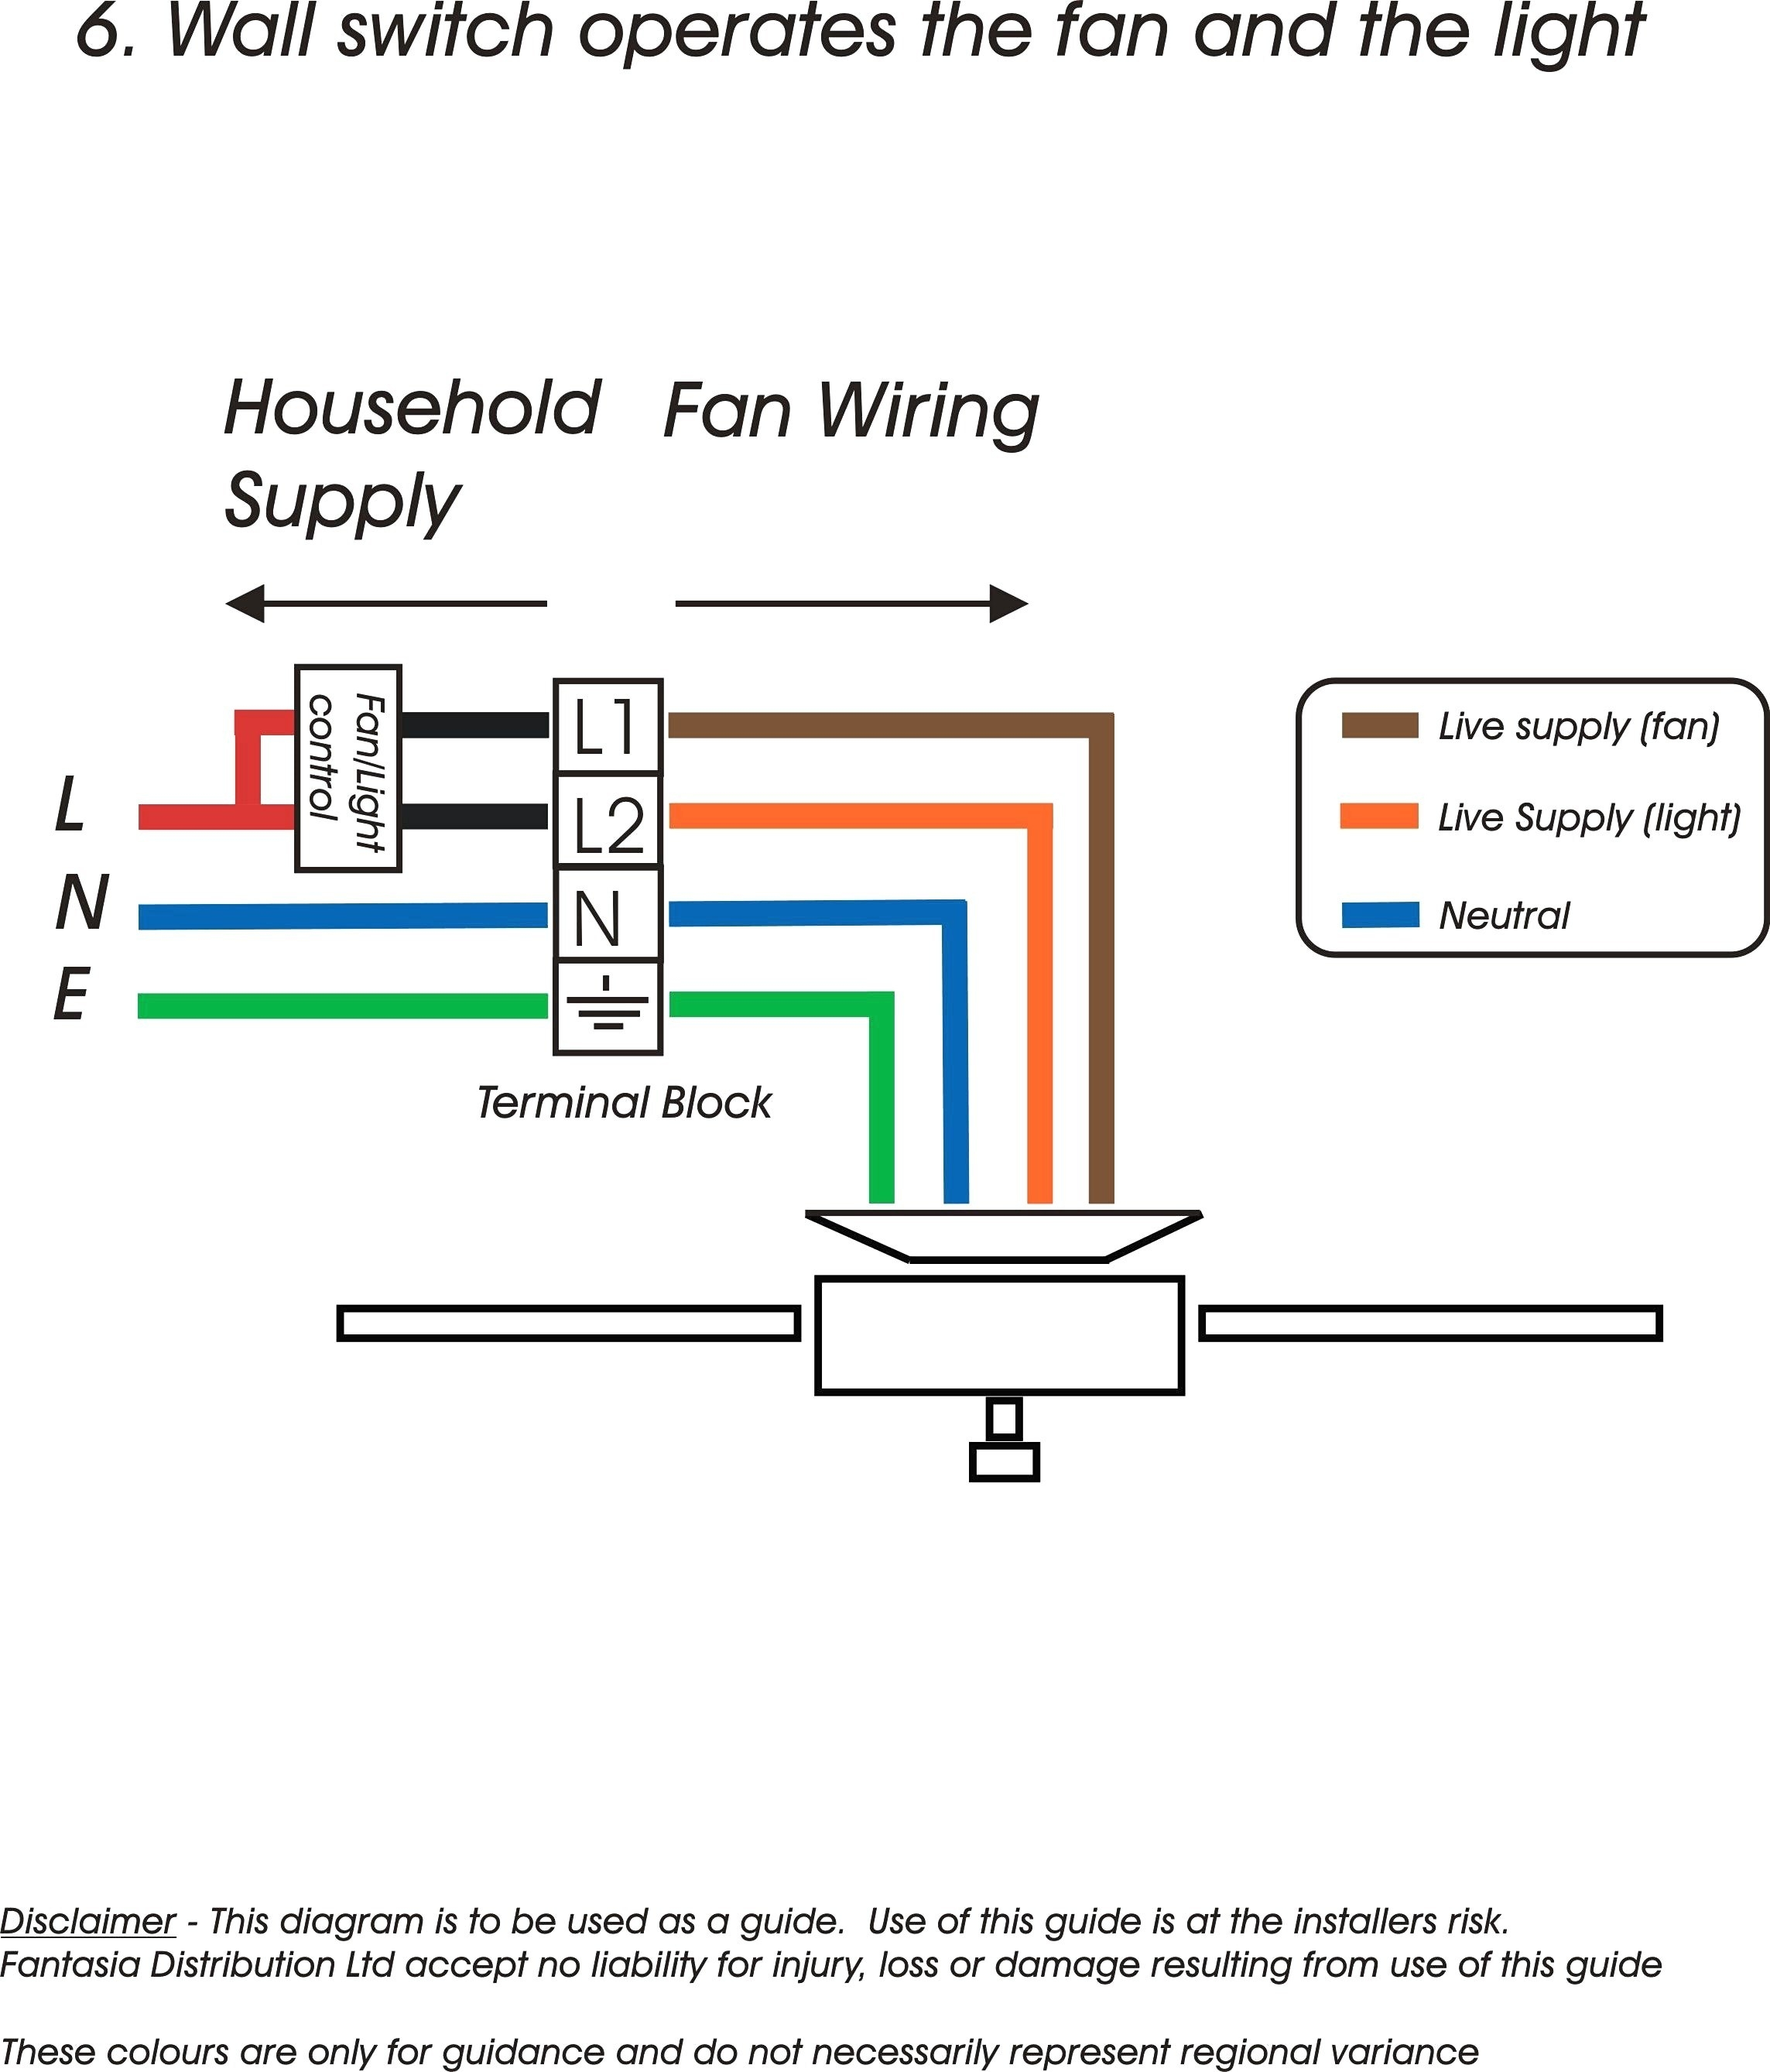 electrical ballast wiring diagram sign    ballast       wiring       diagram    free    wiring       diagram     sign    ballast       wiring       diagram    free    wiring       diagram